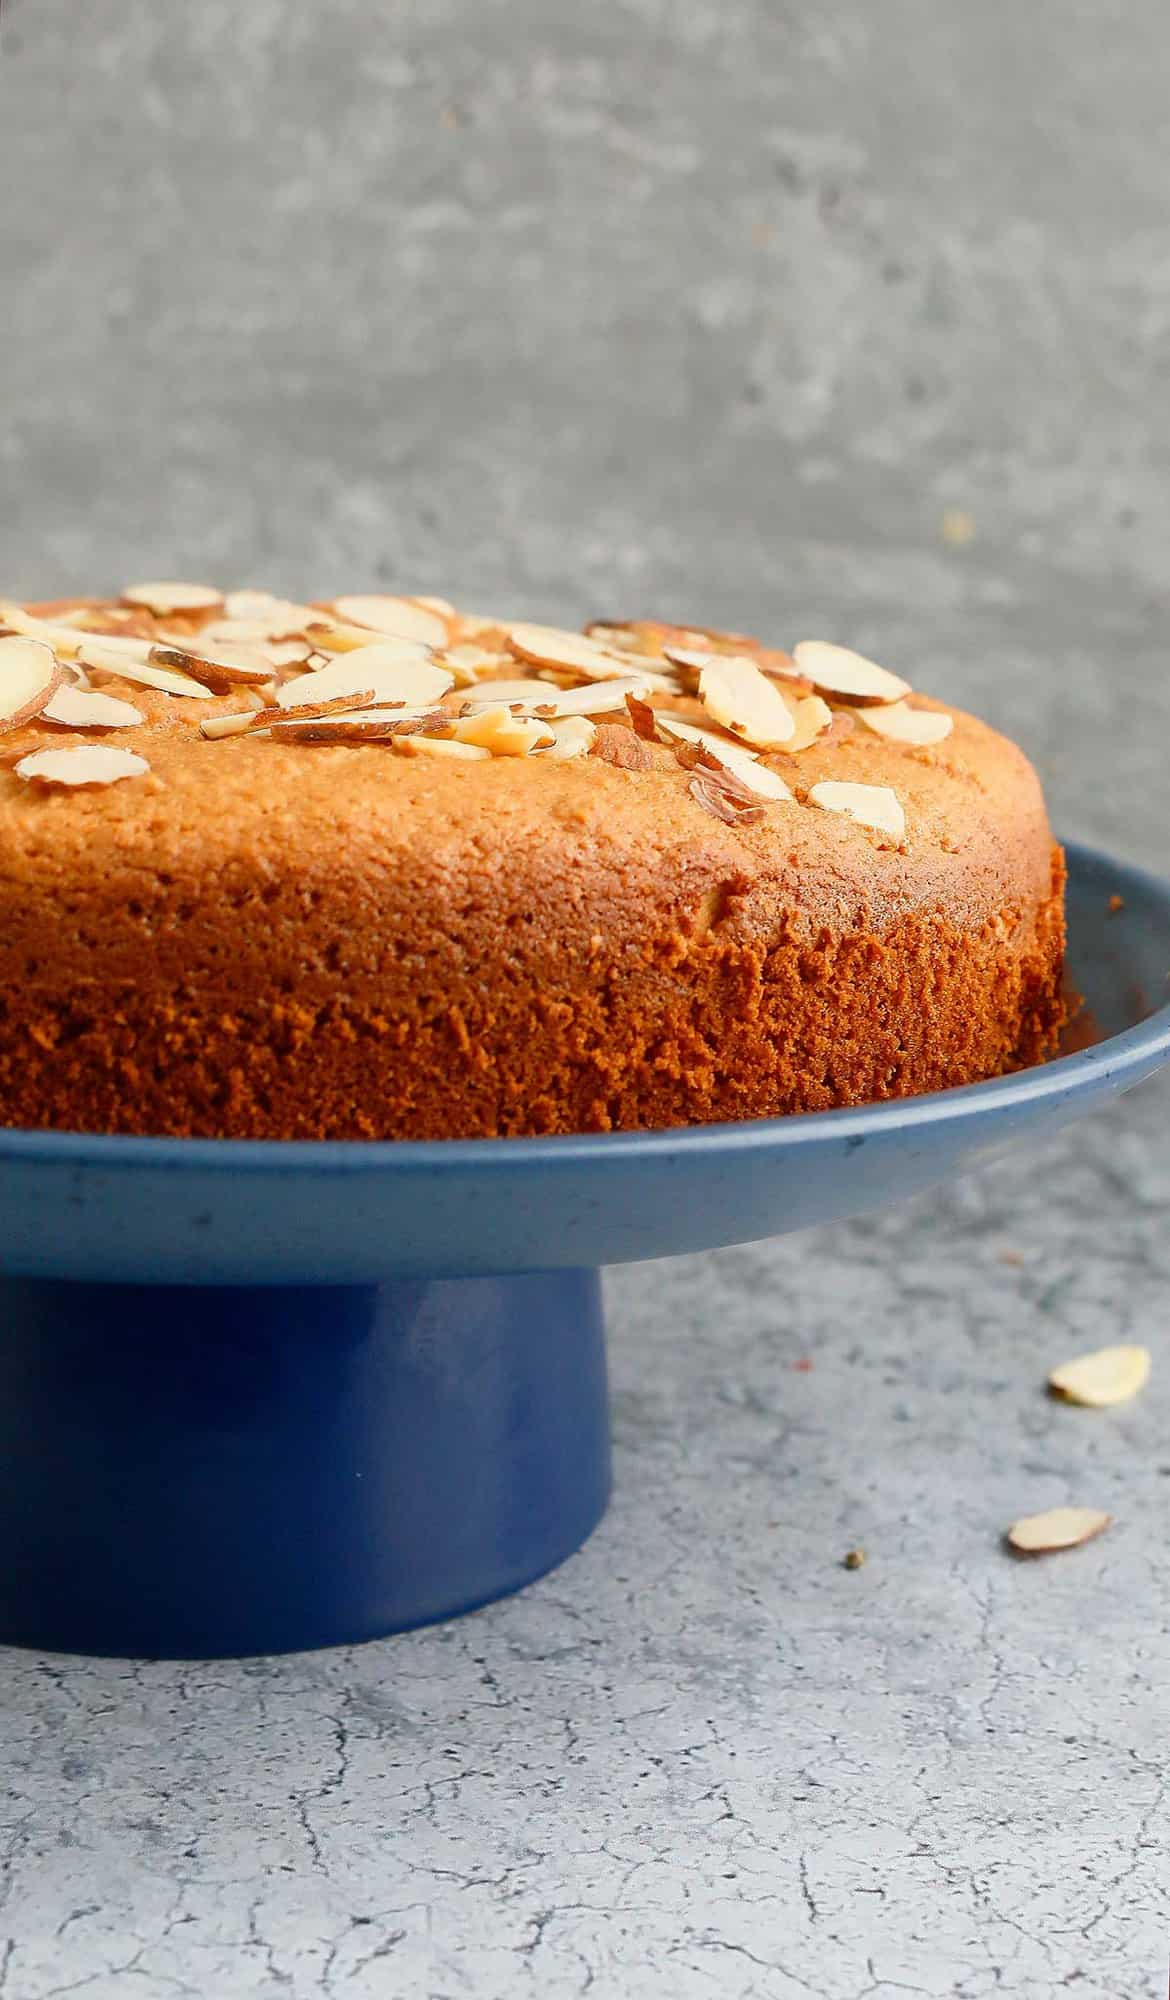 Gluten free almond cake placed on a blue cake stand